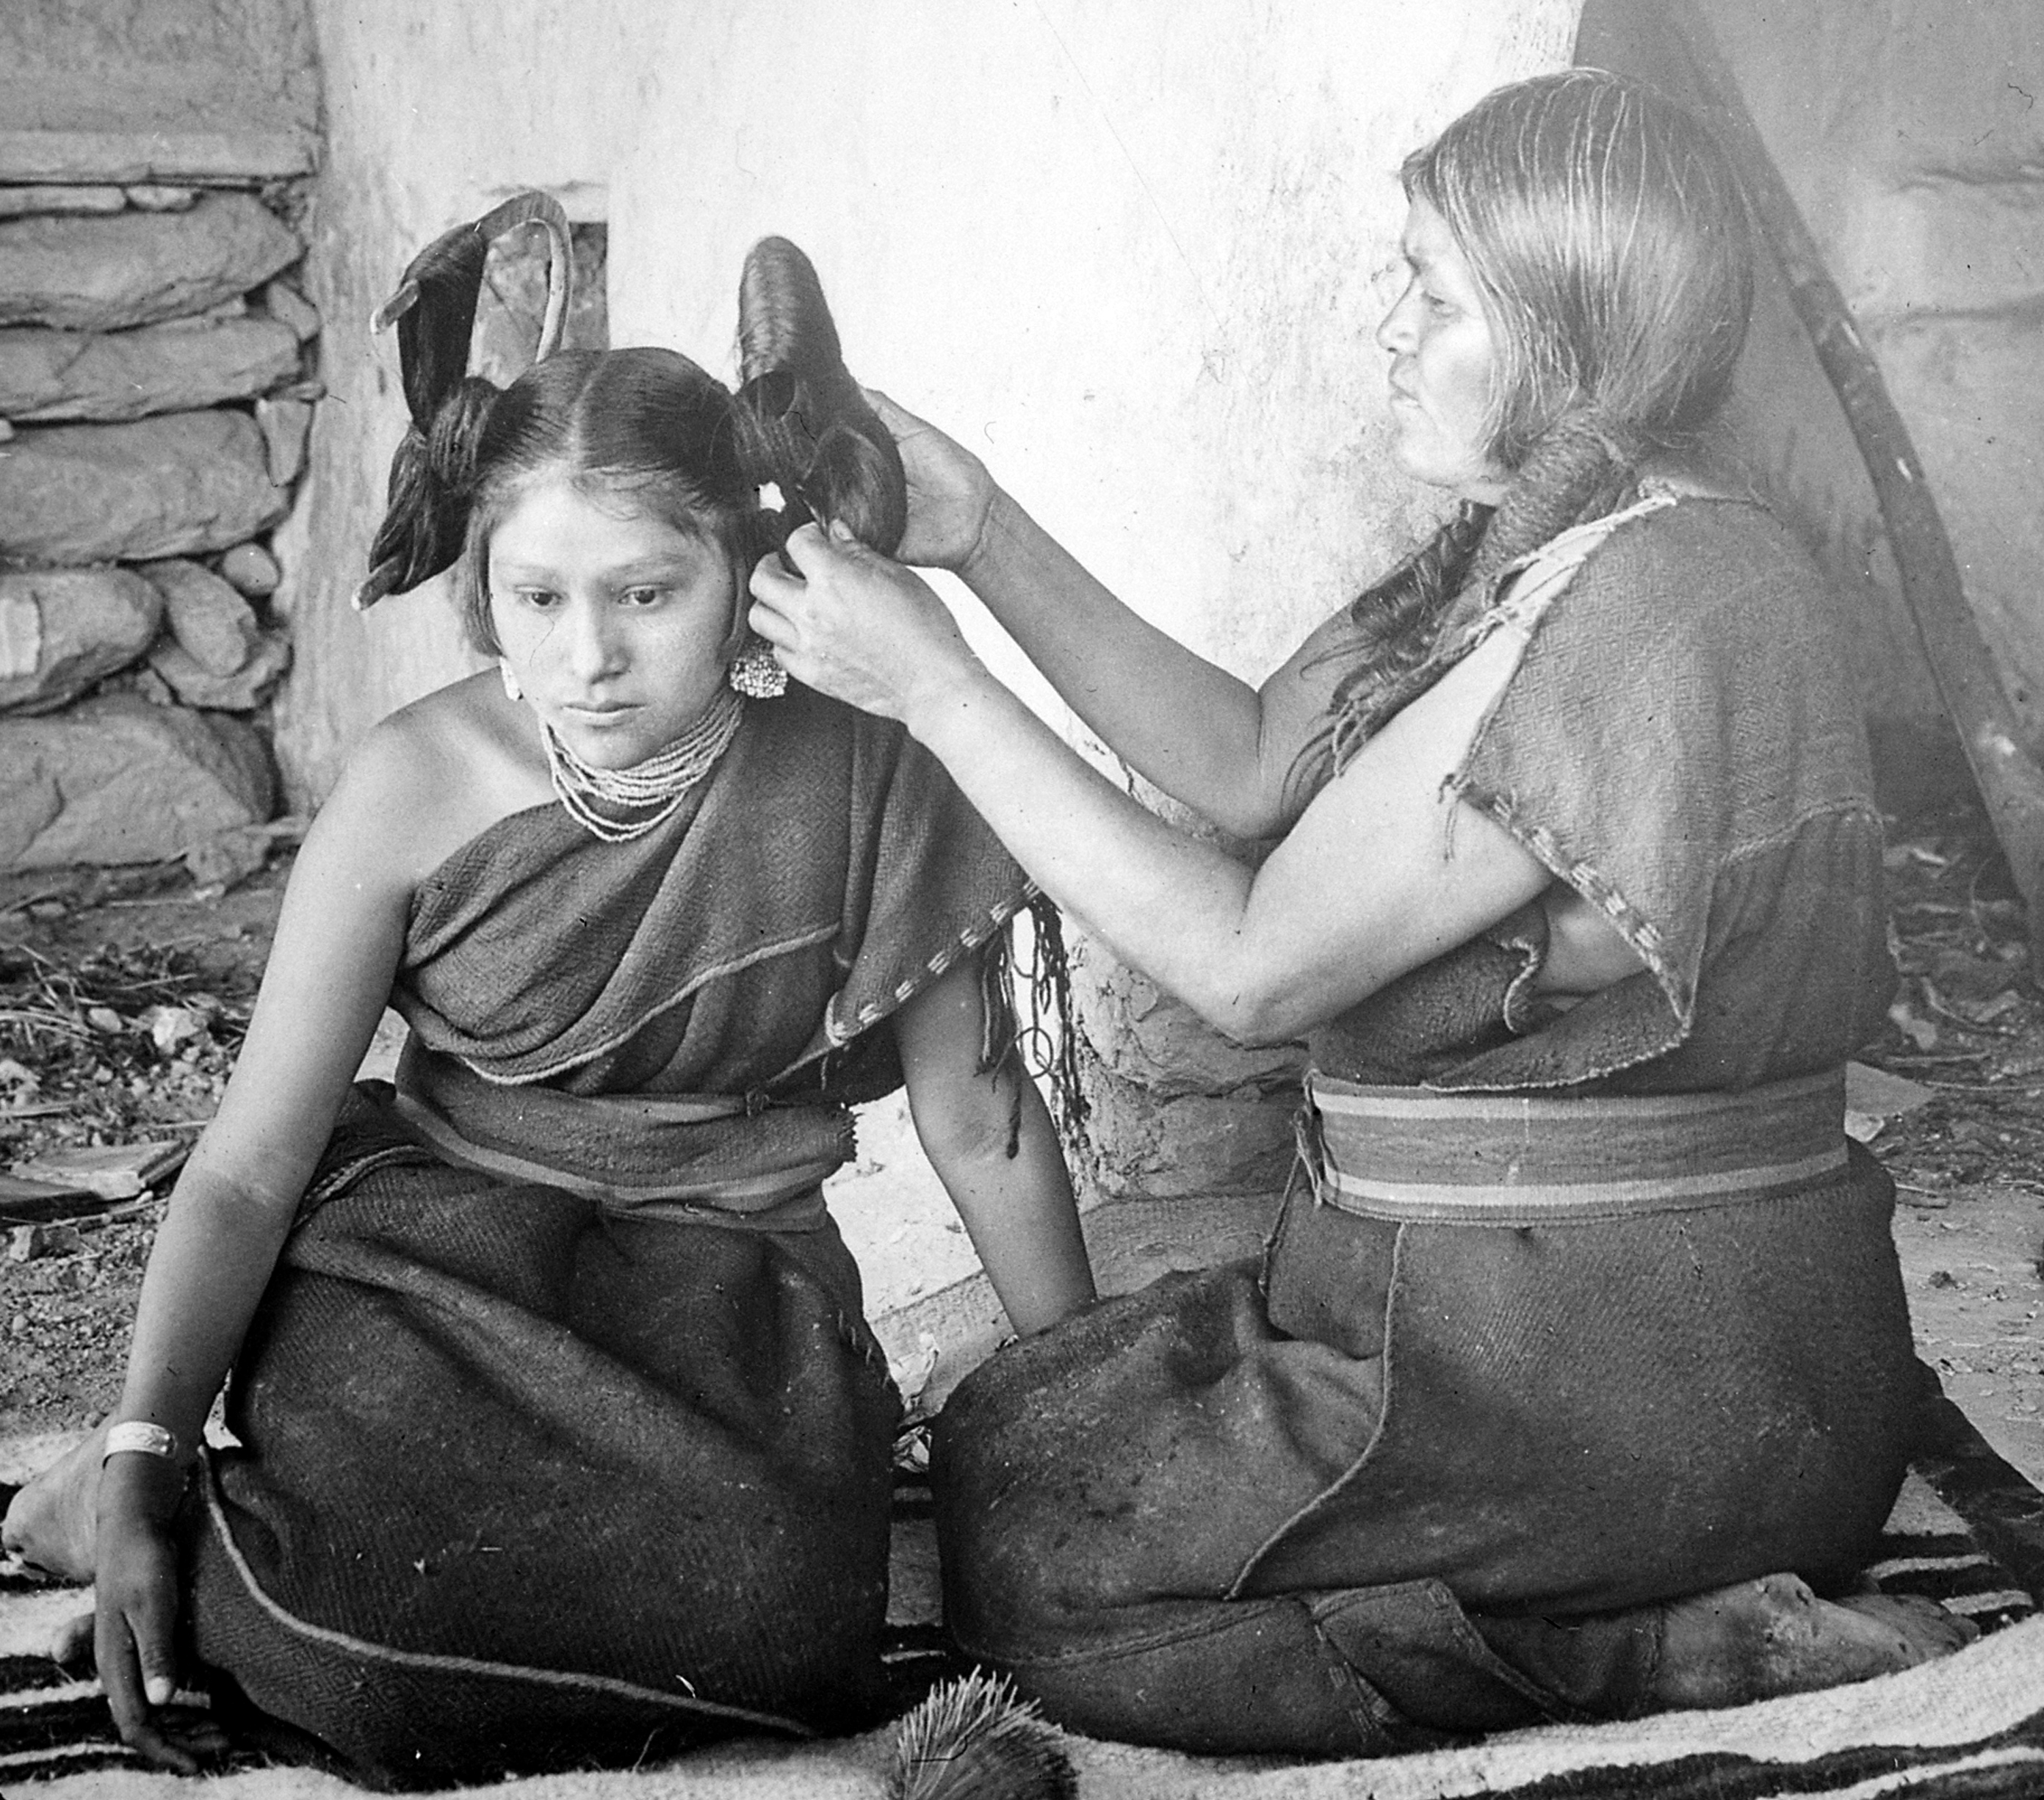 https://upload.wikimedia.org/wikipedia/commons/9/9c/Hopi_woman_dressing_hair_of_unmarried_girl.jpg